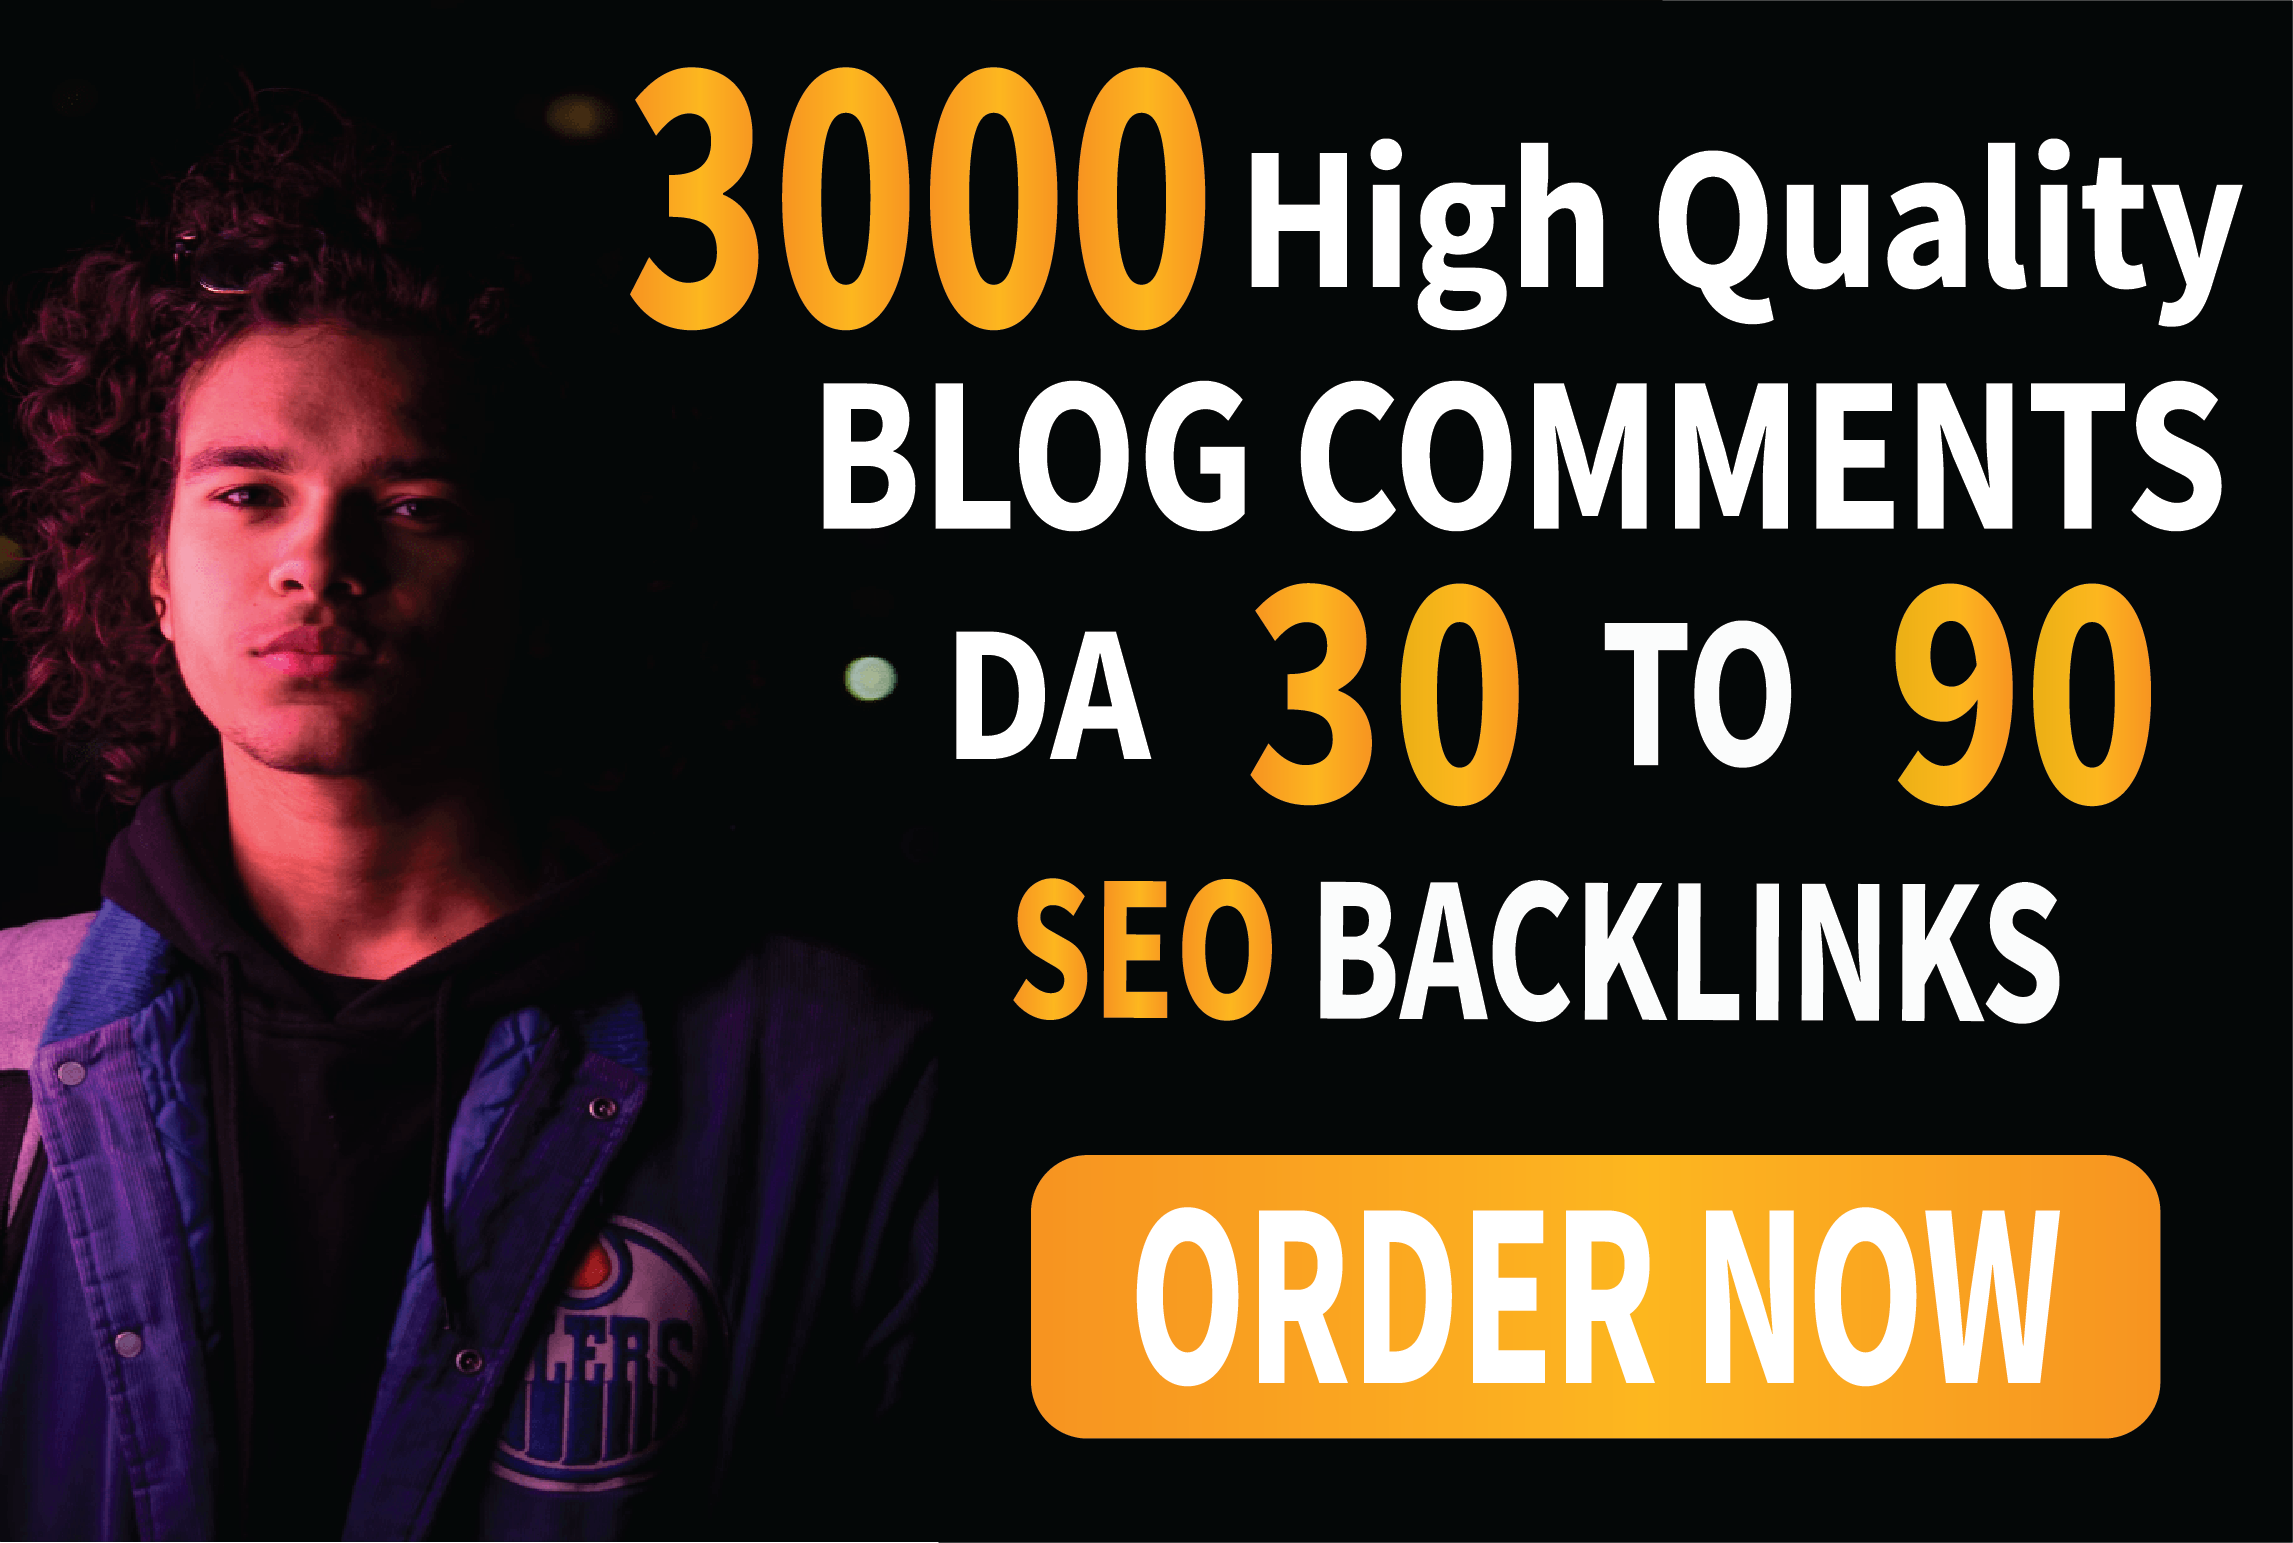 I will build 3000 blog comments manually